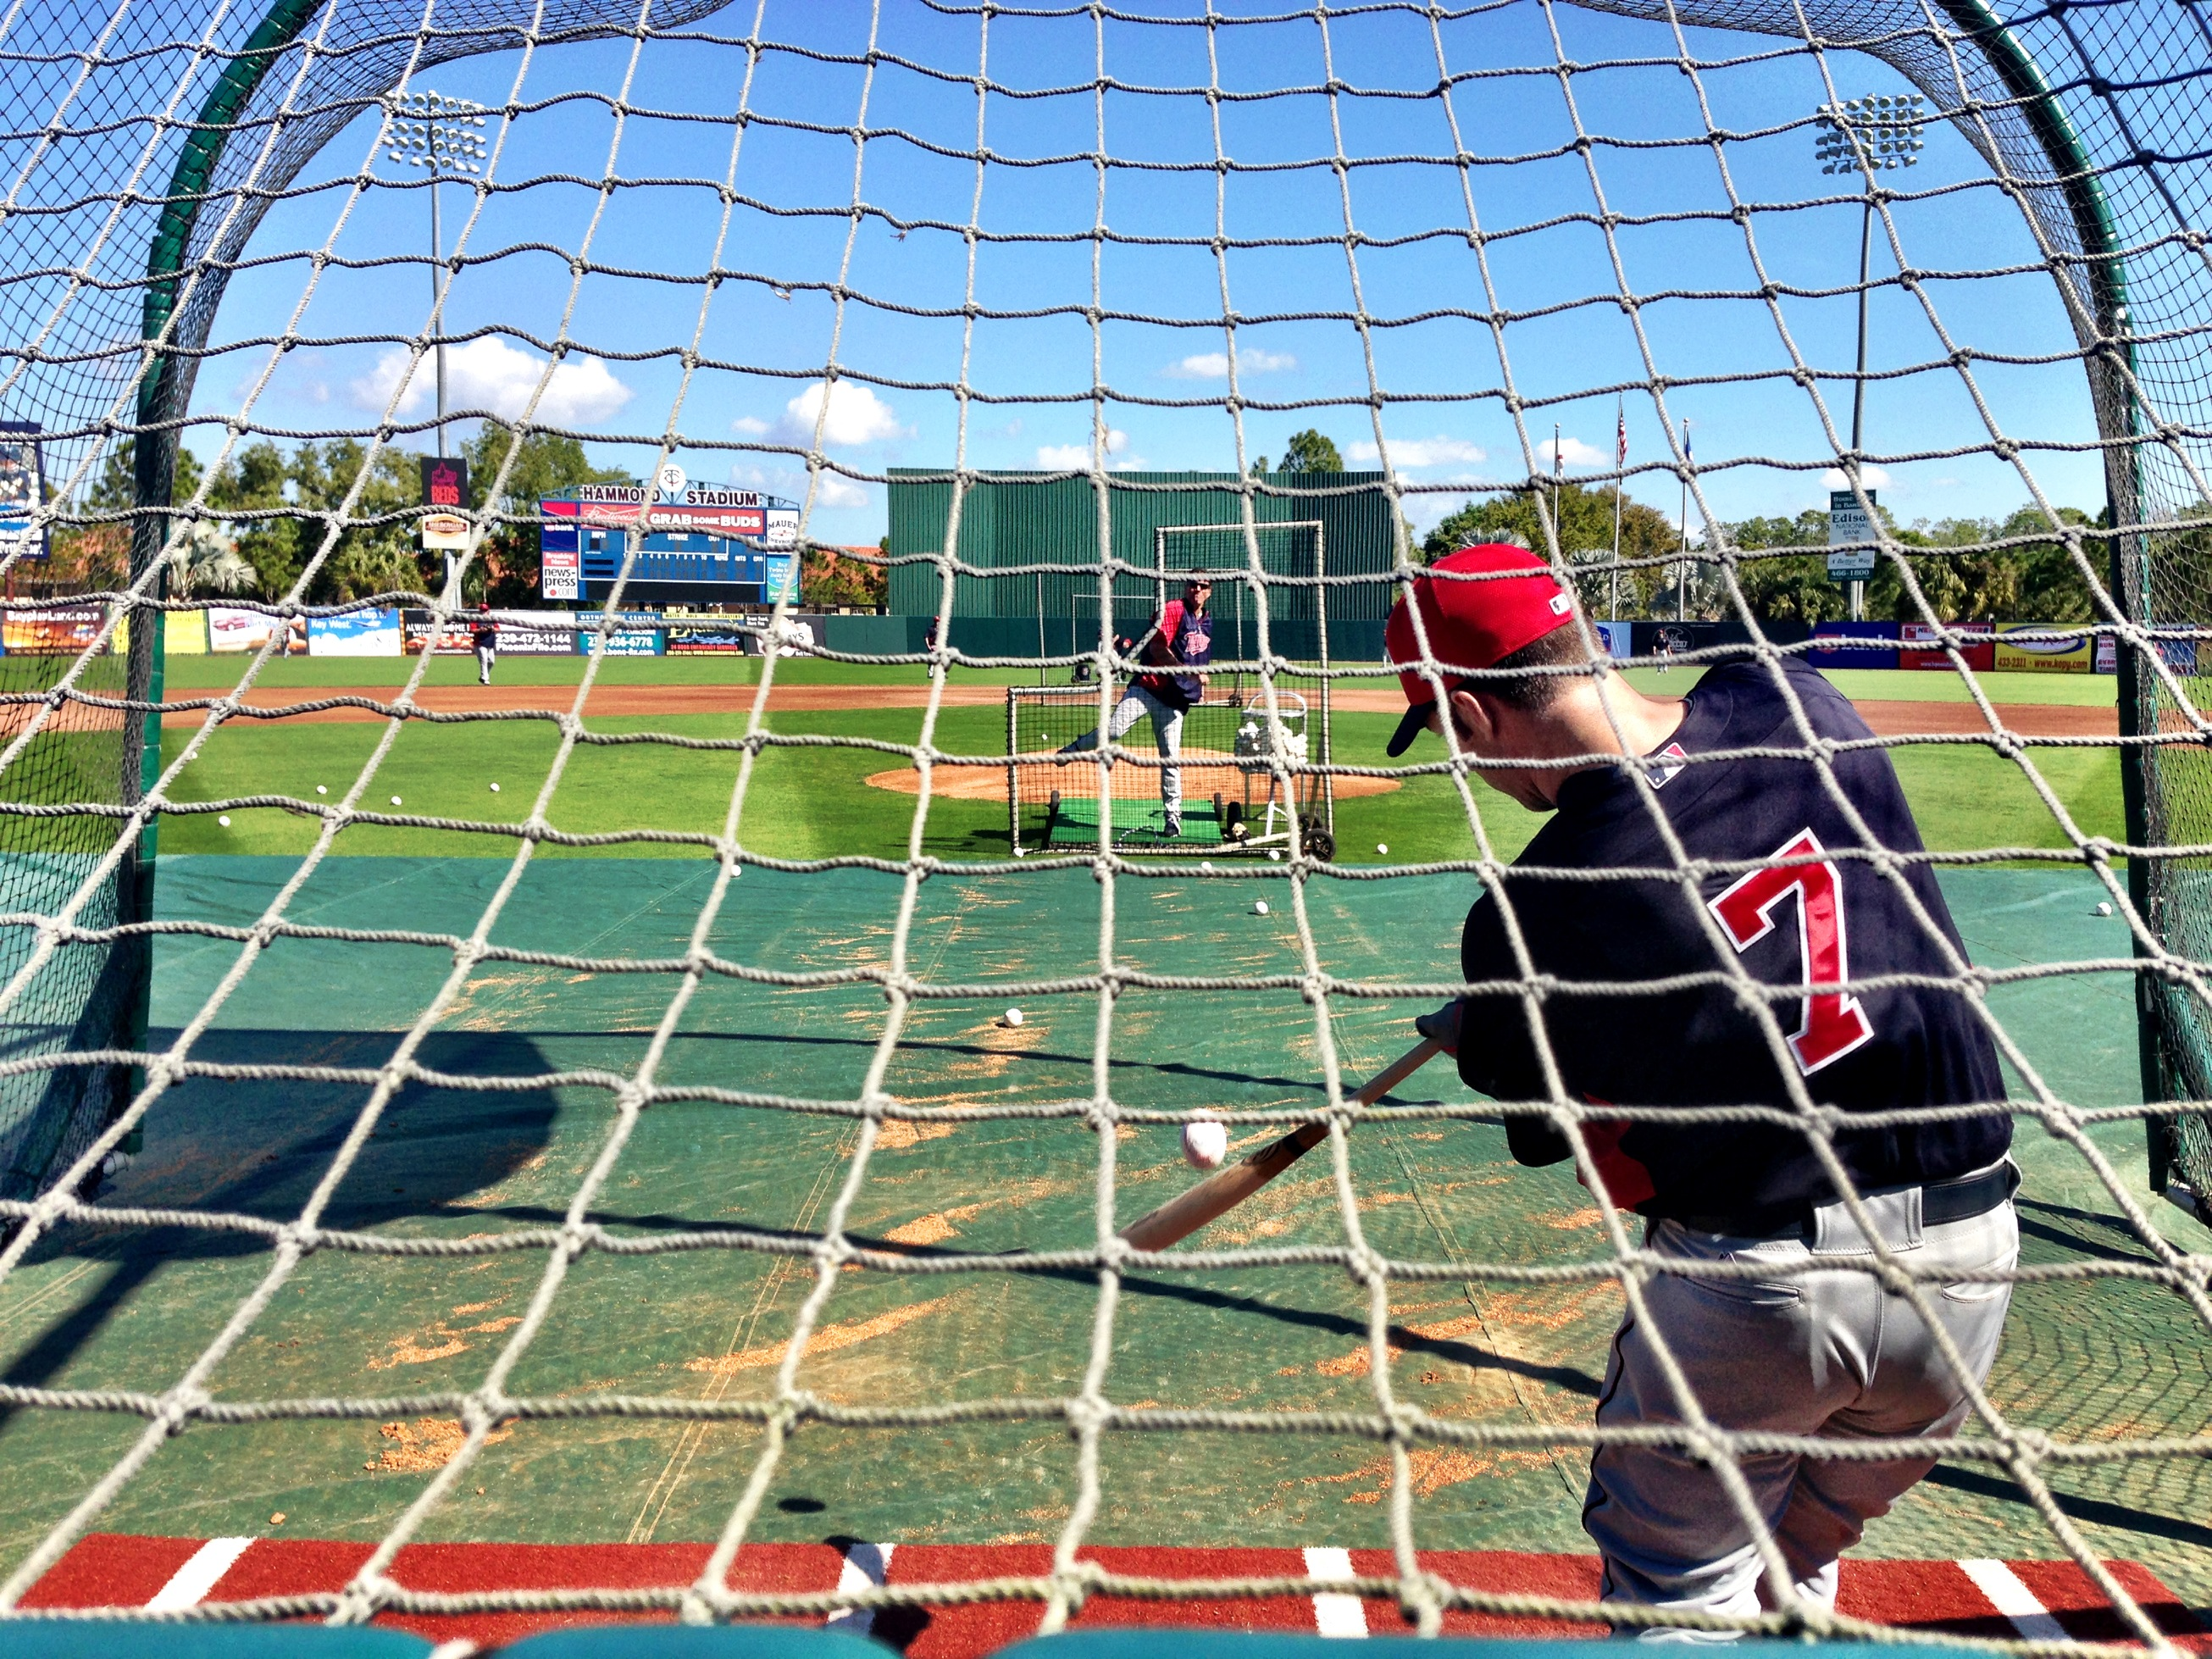 Joe Mauer taking batting practice